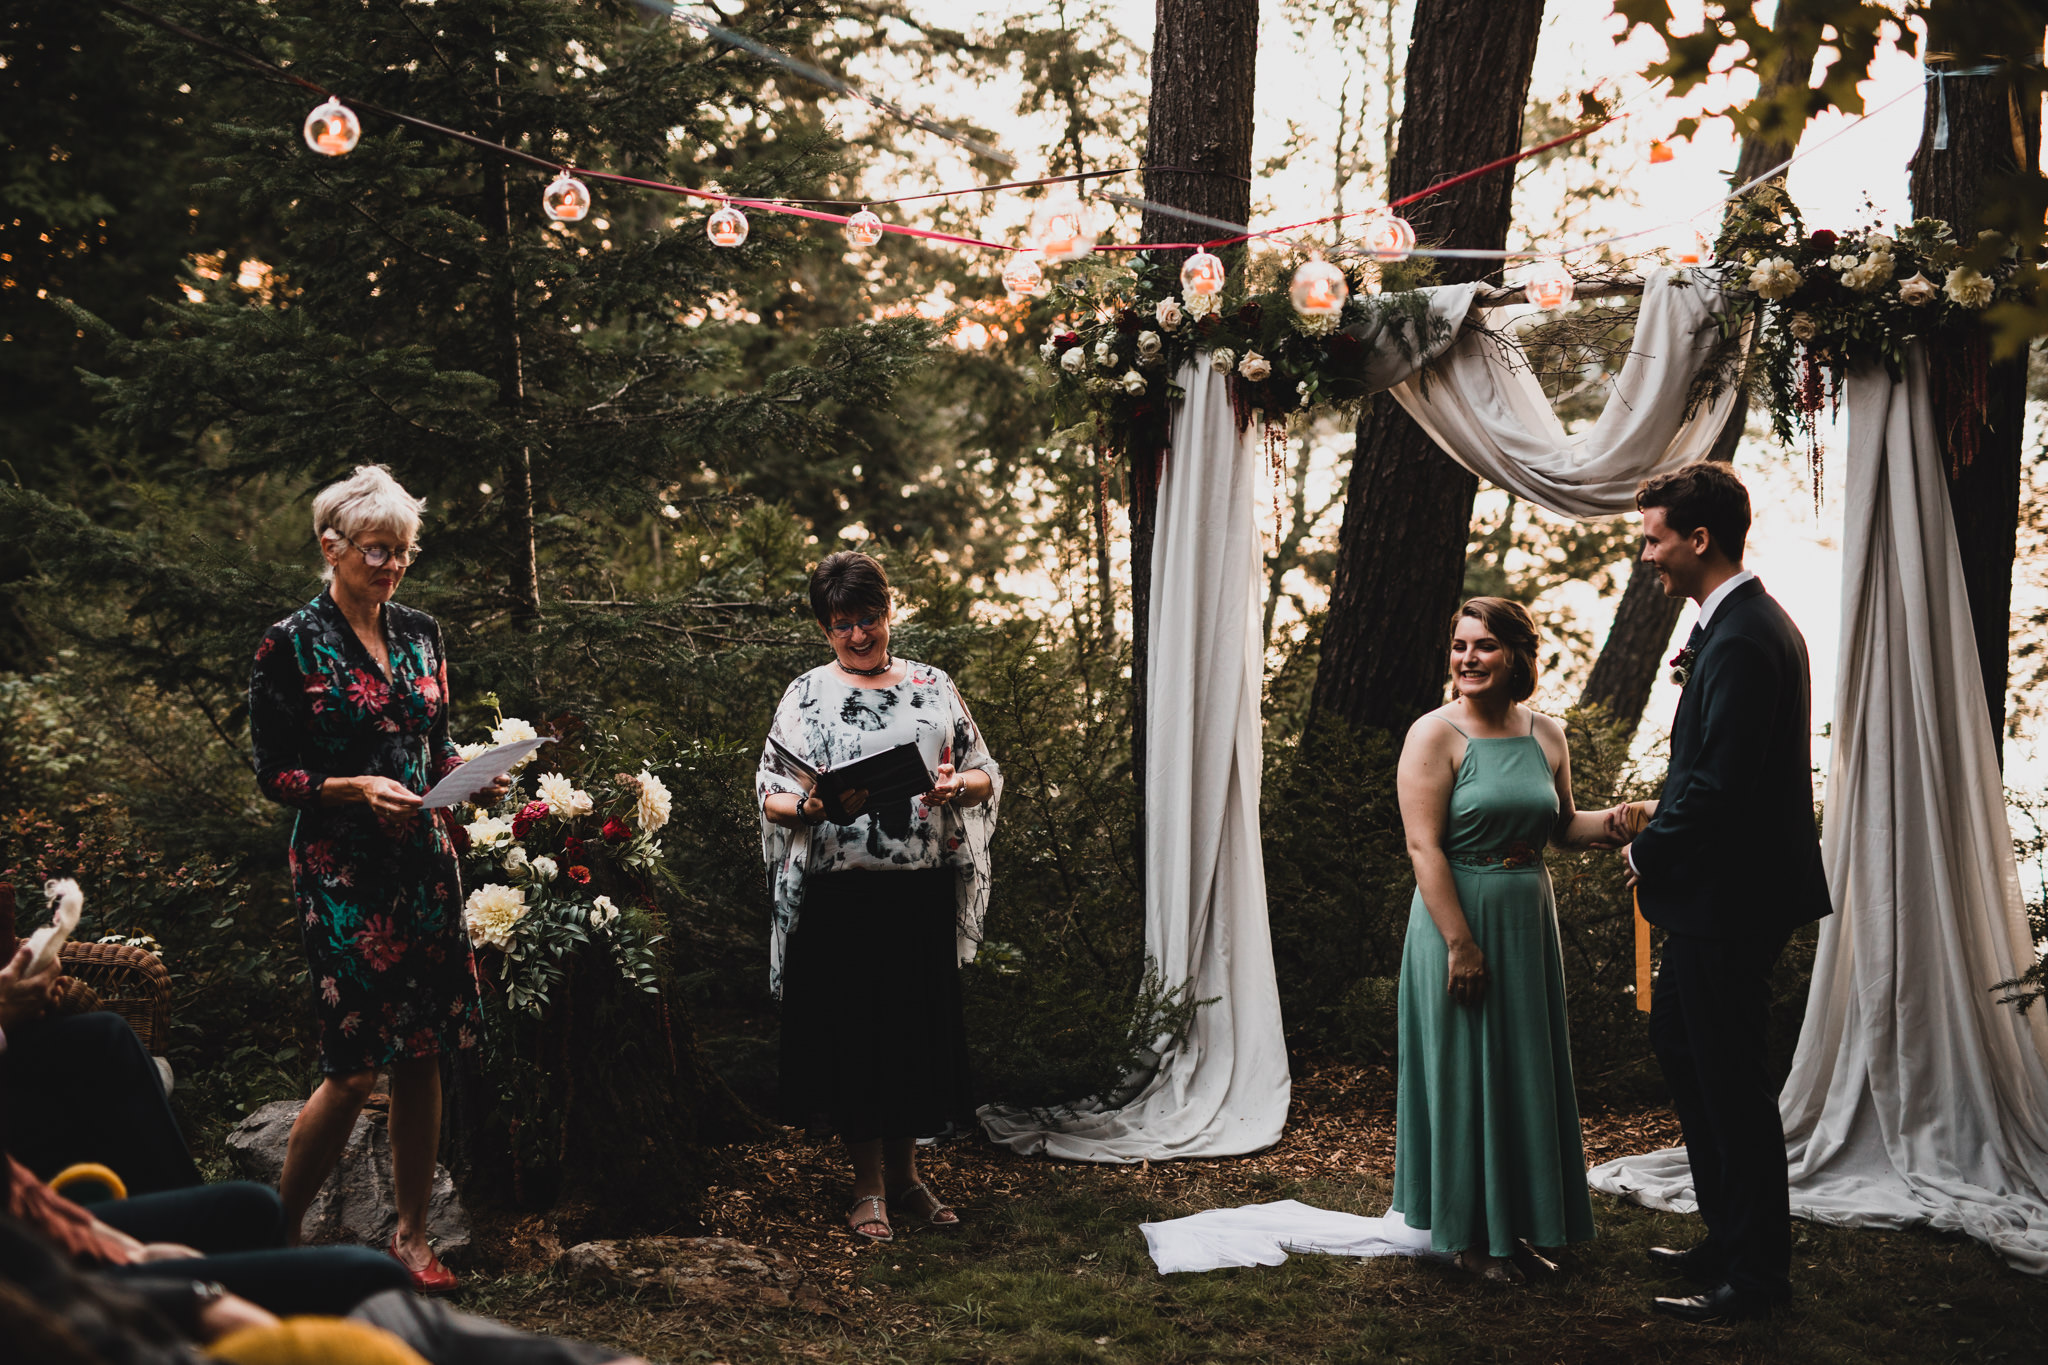 Hand-tying wedding ceremony